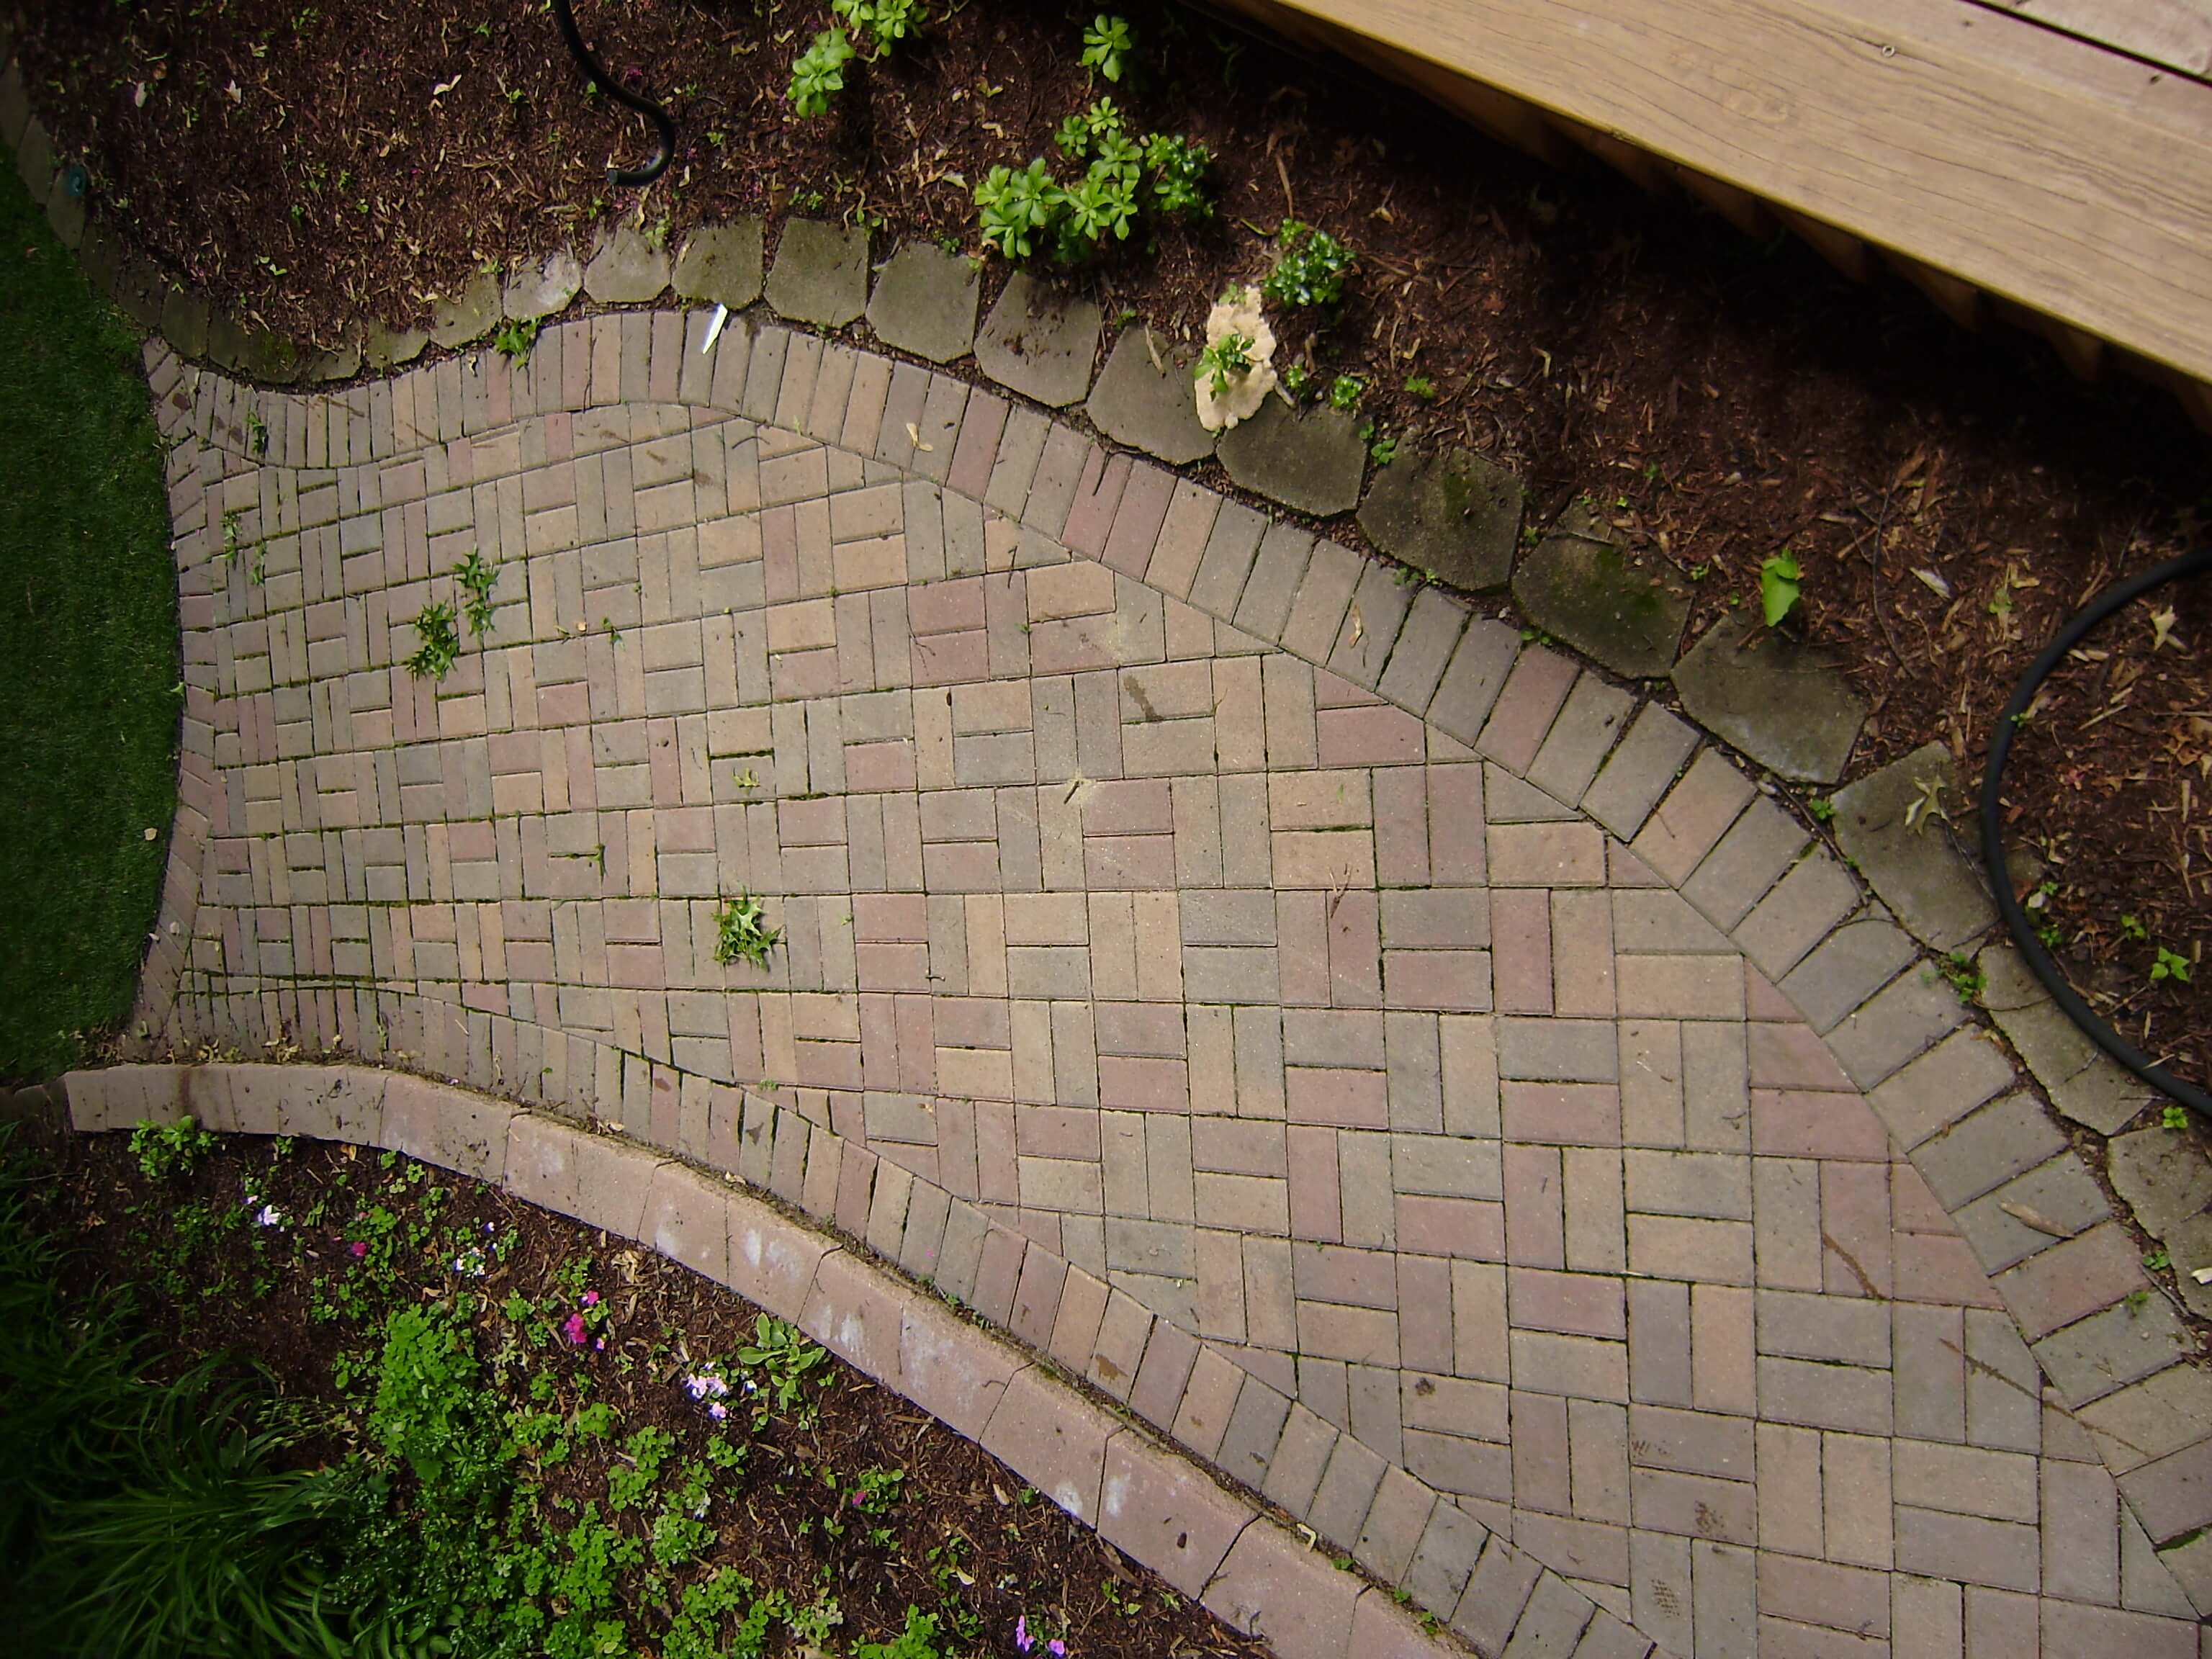 Paver patio walkway that contains algae dirt and other debris